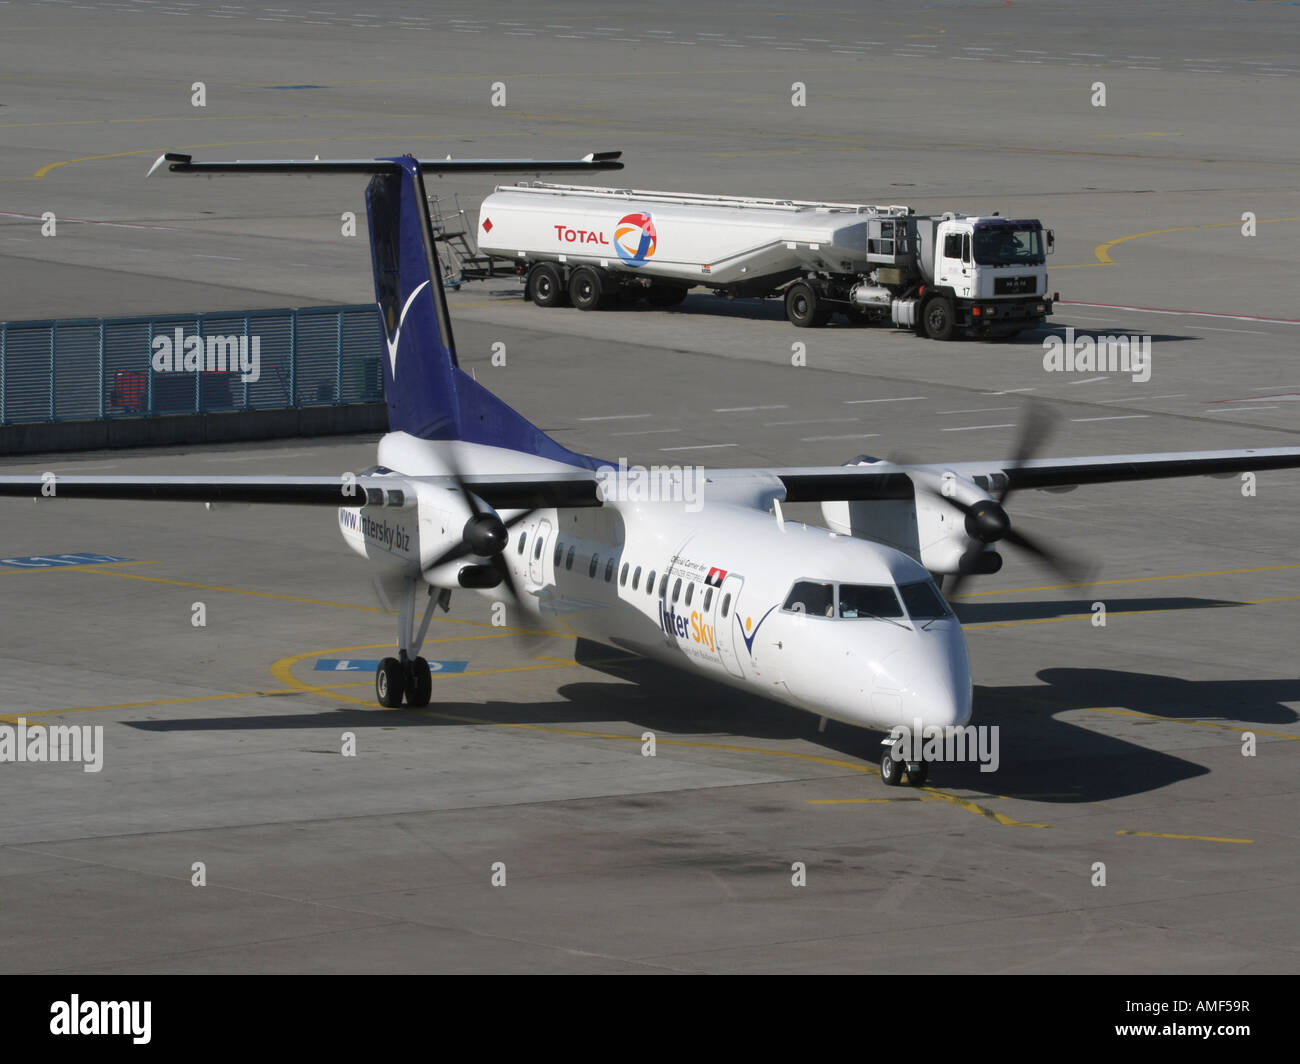 InterSky Bombardier Dash 8-Q300 on the ramp with fuel bowser - Stock Image